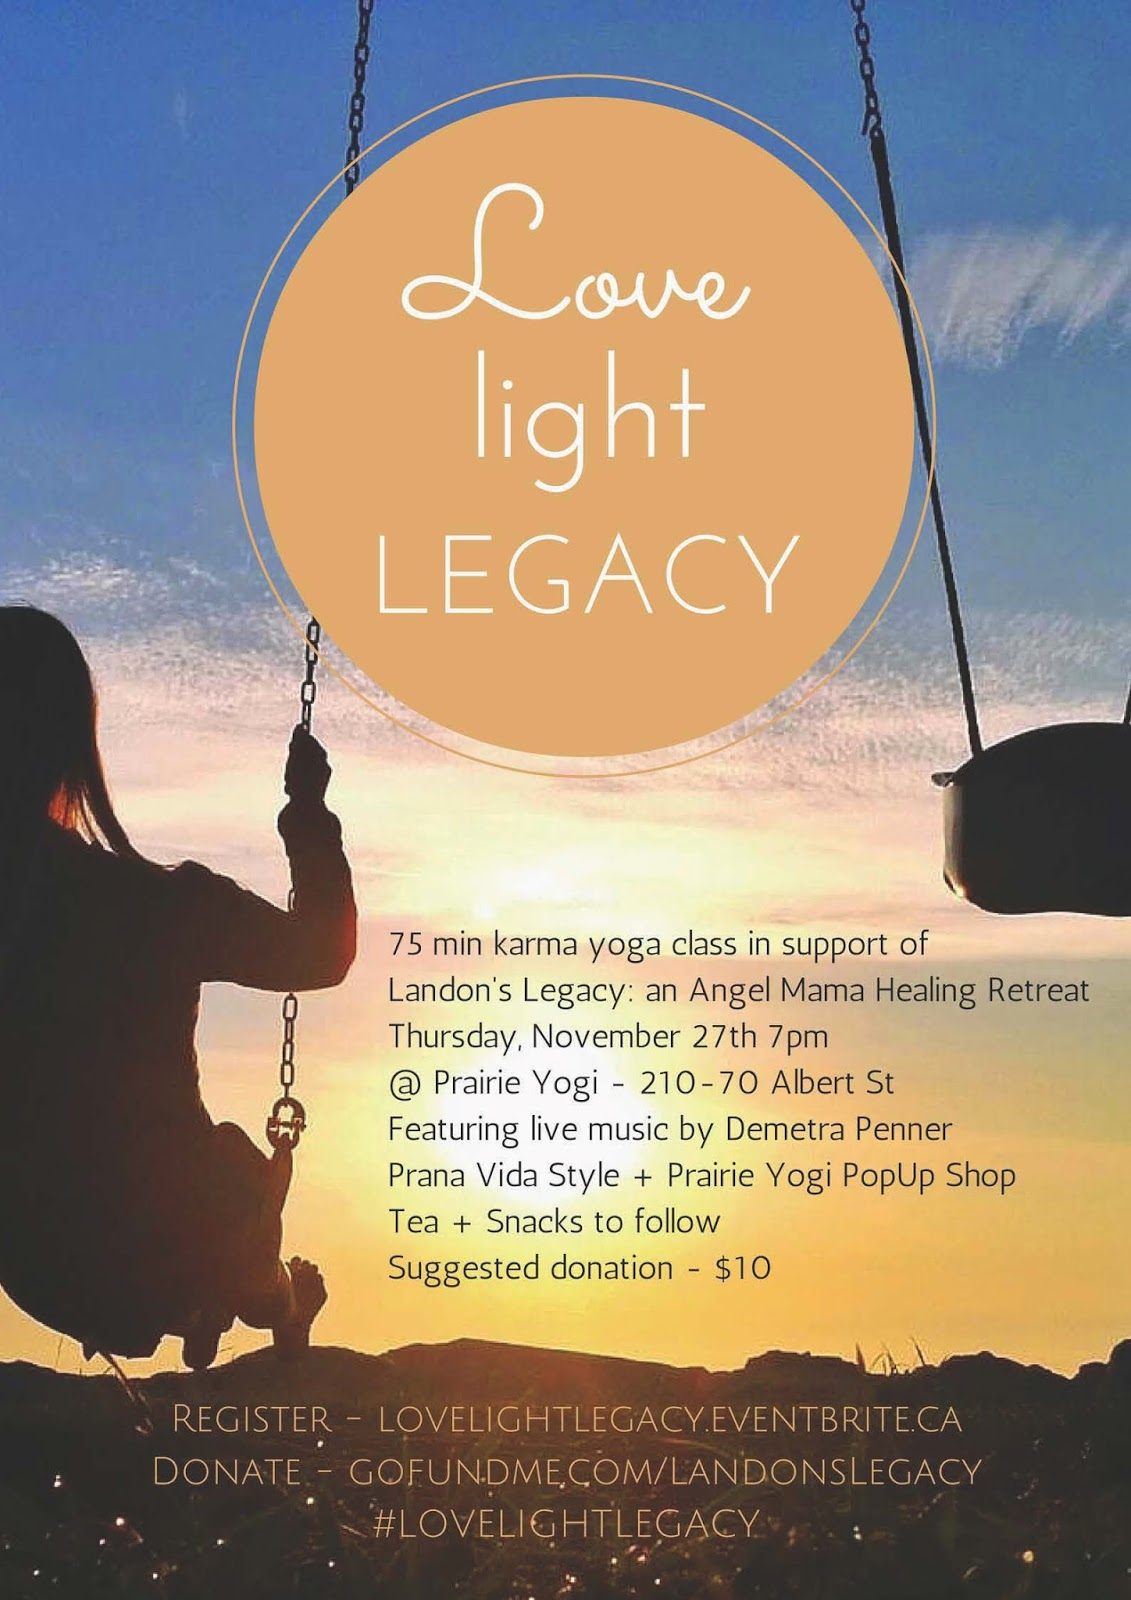 Amelia barnes, Landon's Legacy, Angel Mama Healing Retreat, Karma Yoga, Prairie Yogi Pop Up shop, Prana Vida Style,